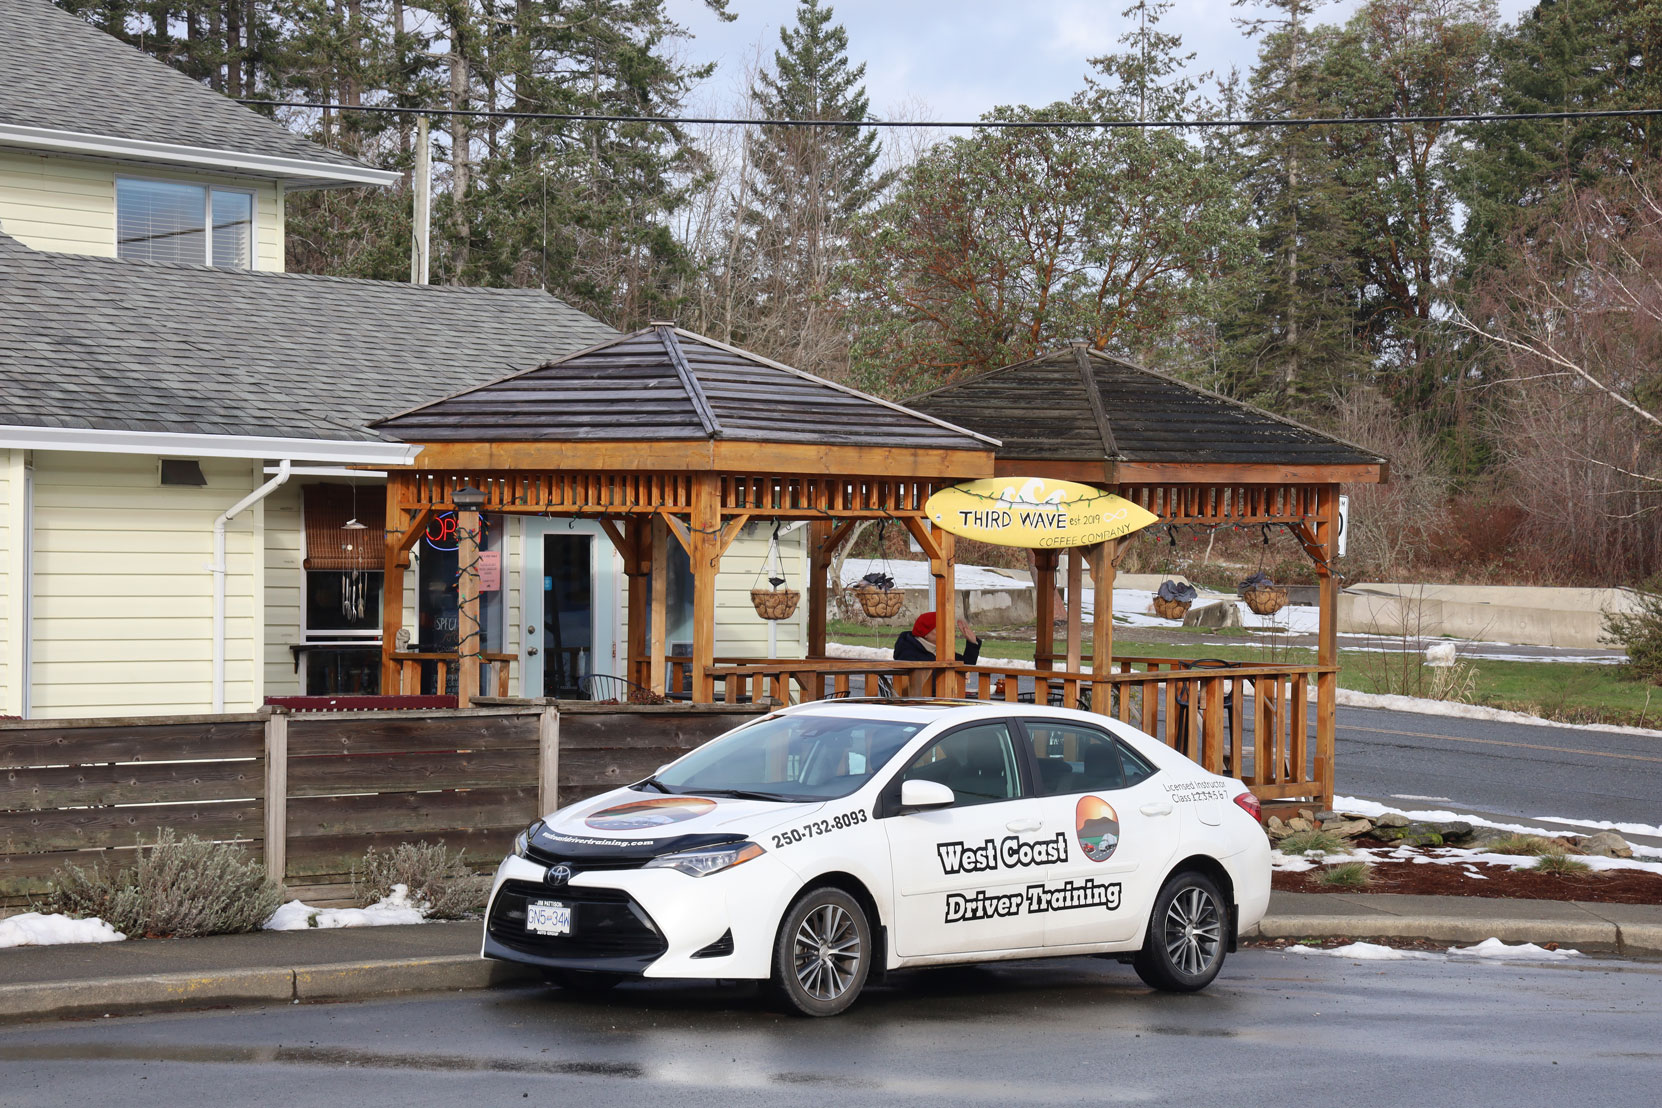 Our 2018 Toyota Corolla in fron of the Third Wave Coffee Company near the Crofton ferry (photo: West Coast Driver Training)